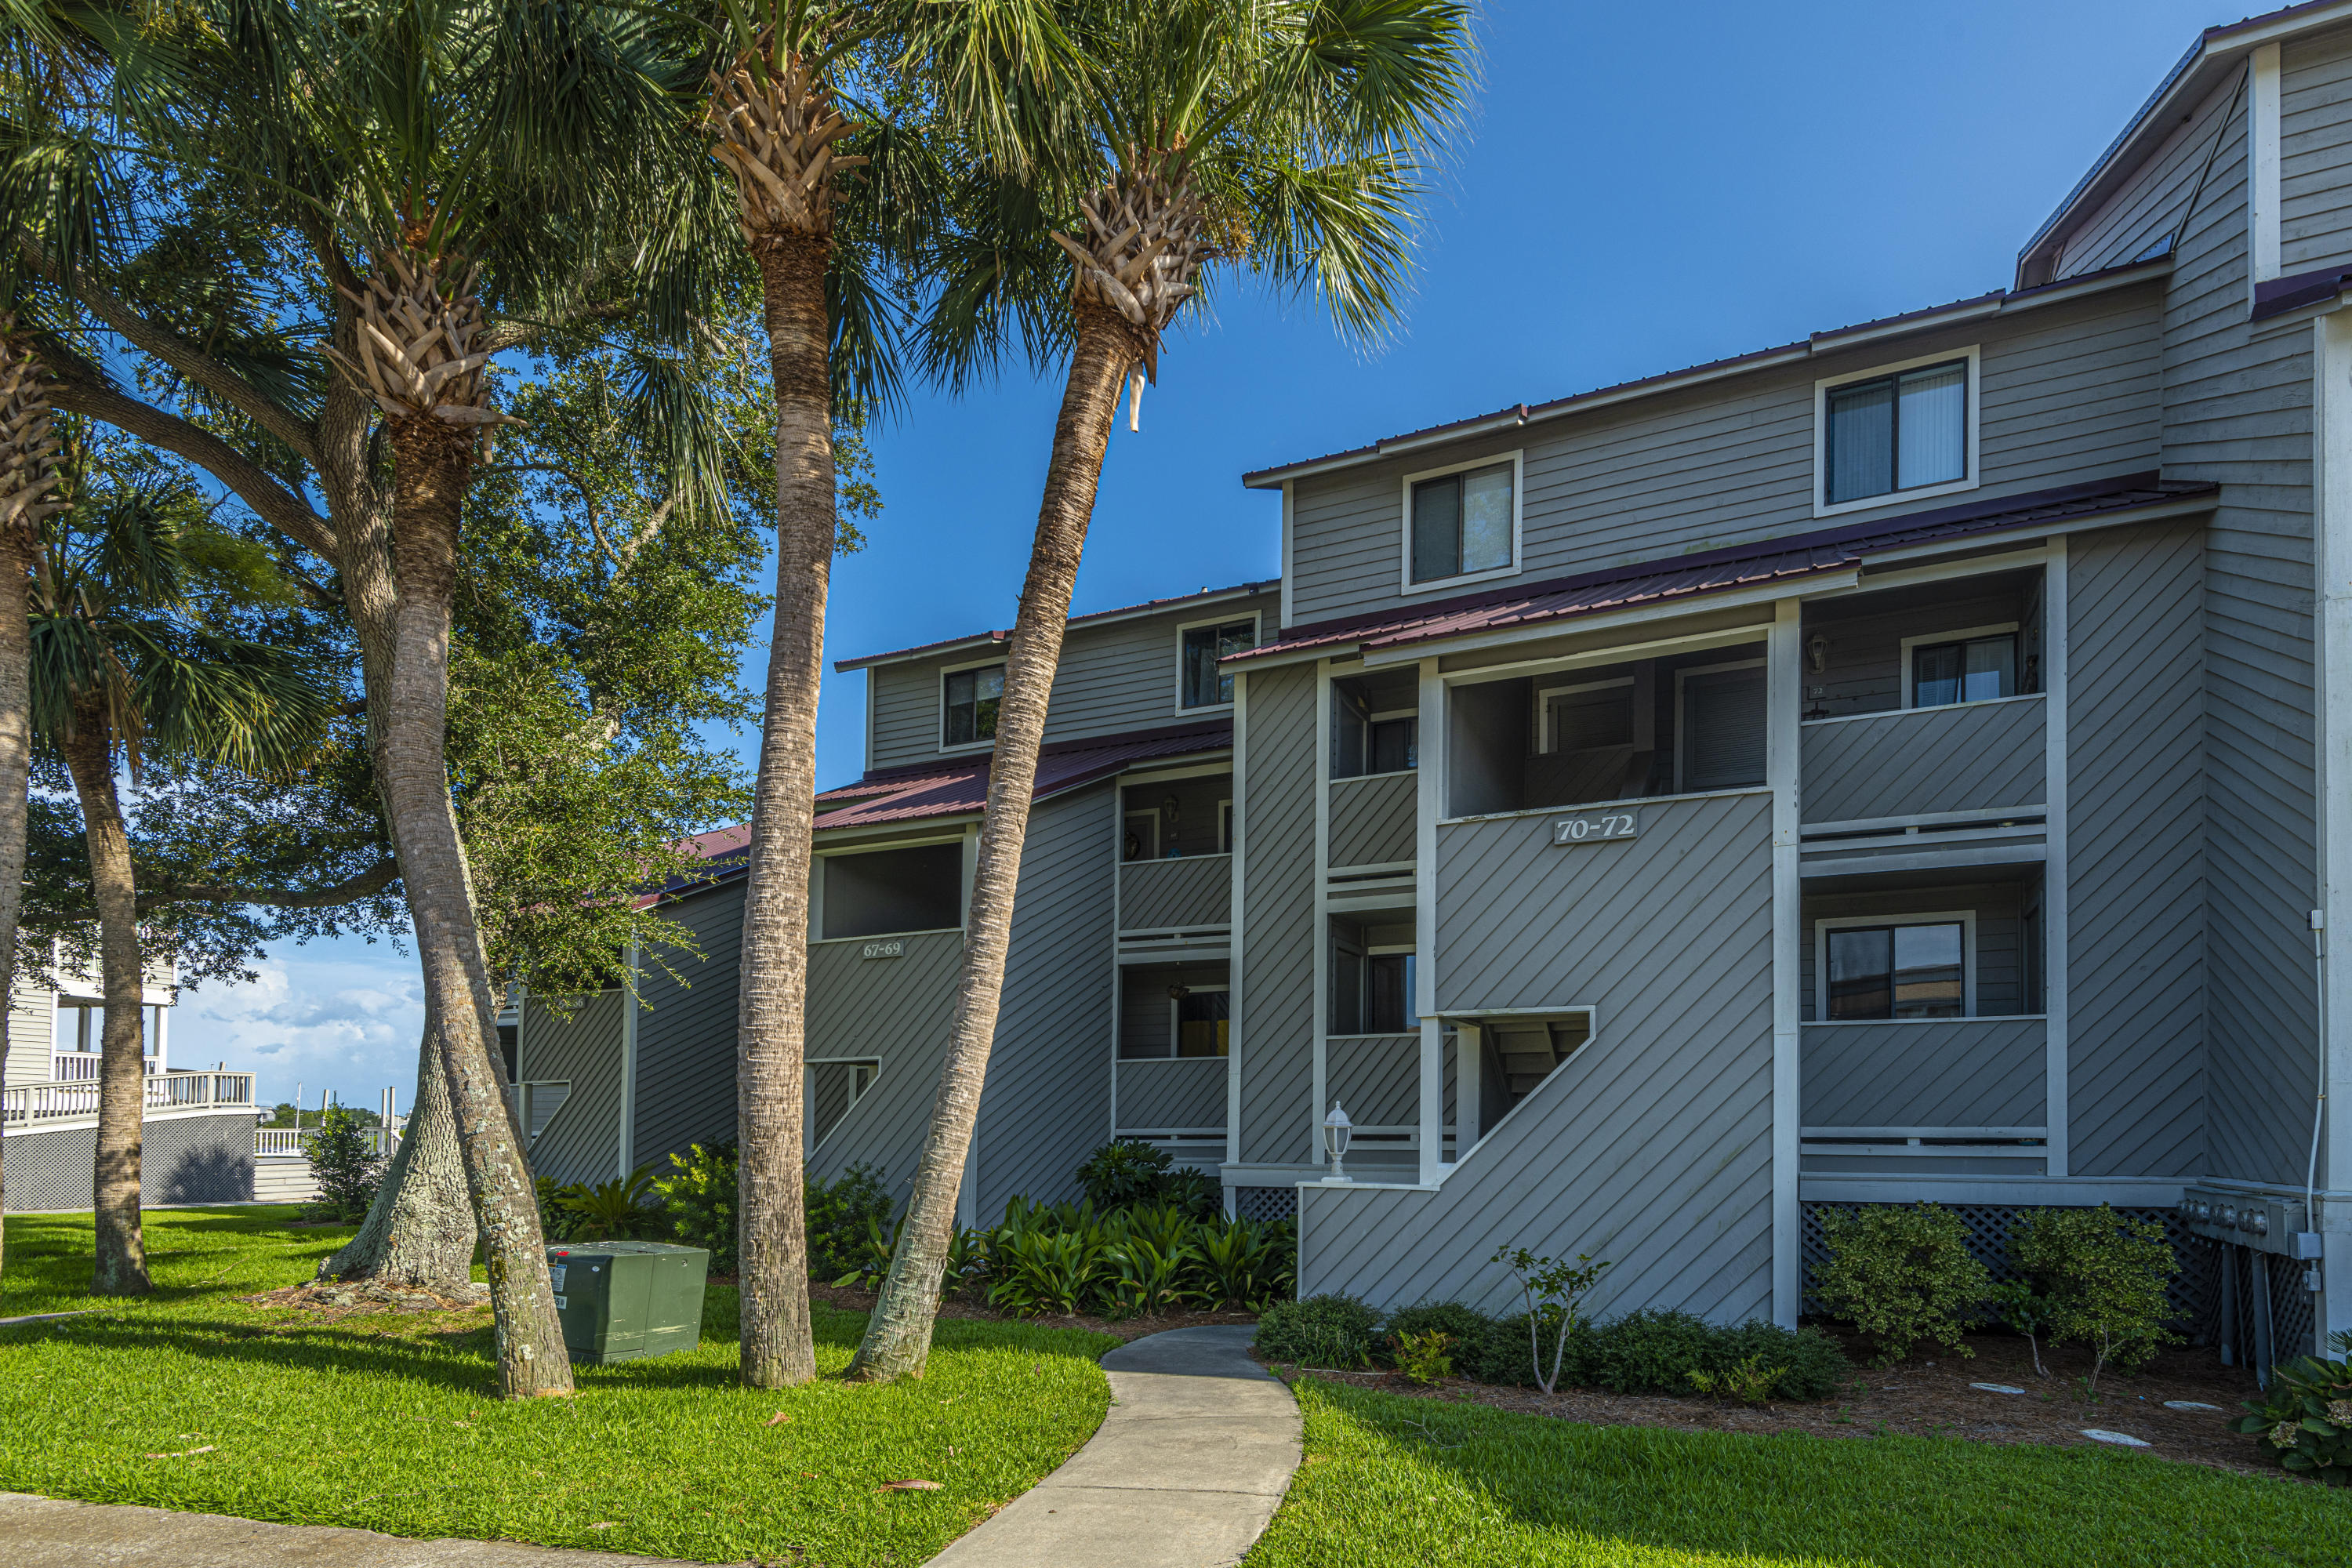 Mariners Cay Homes For Sale - 71 Mariners Cay, Folly Beach, SC - 22